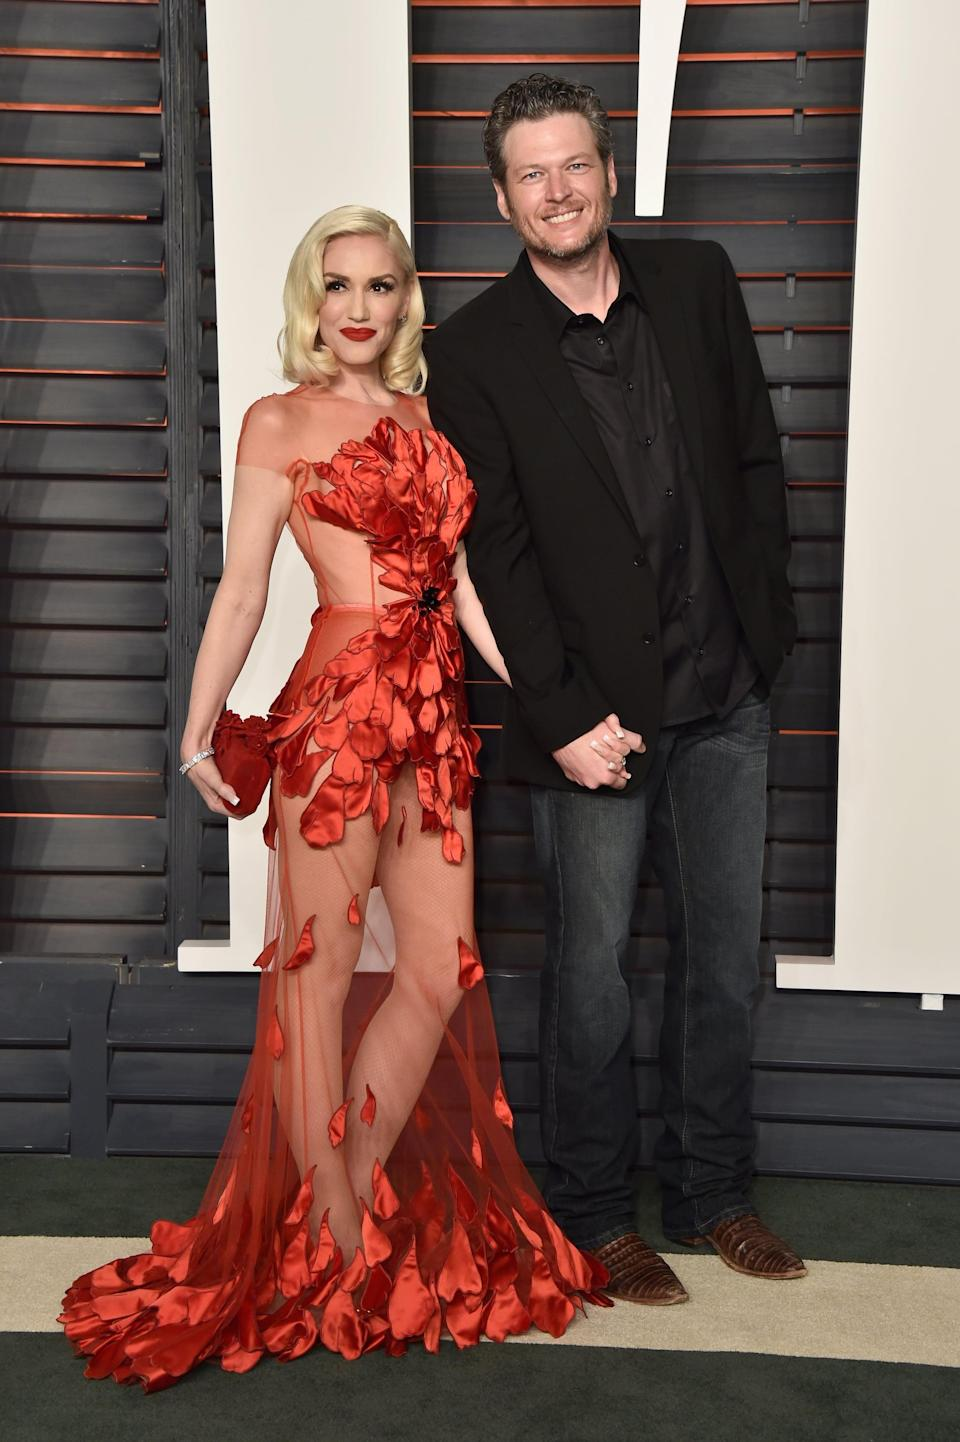 """<p>Attending the 2016 <strong>Vanity Fair</strong> Oscars afterparty wearing <a href=""""https://www.popsugar.com/fashion/photo-gallery/40320806/image/40378793/Gwen-Stefani"""" class=""""link rapid-noclick-resp"""" rel=""""nofollow noopener"""" target=""""_blank"""" data-ylk=""""slk:a sheer red gown"""">a sheer red gown</a> by Yanina Couture.</p>"""